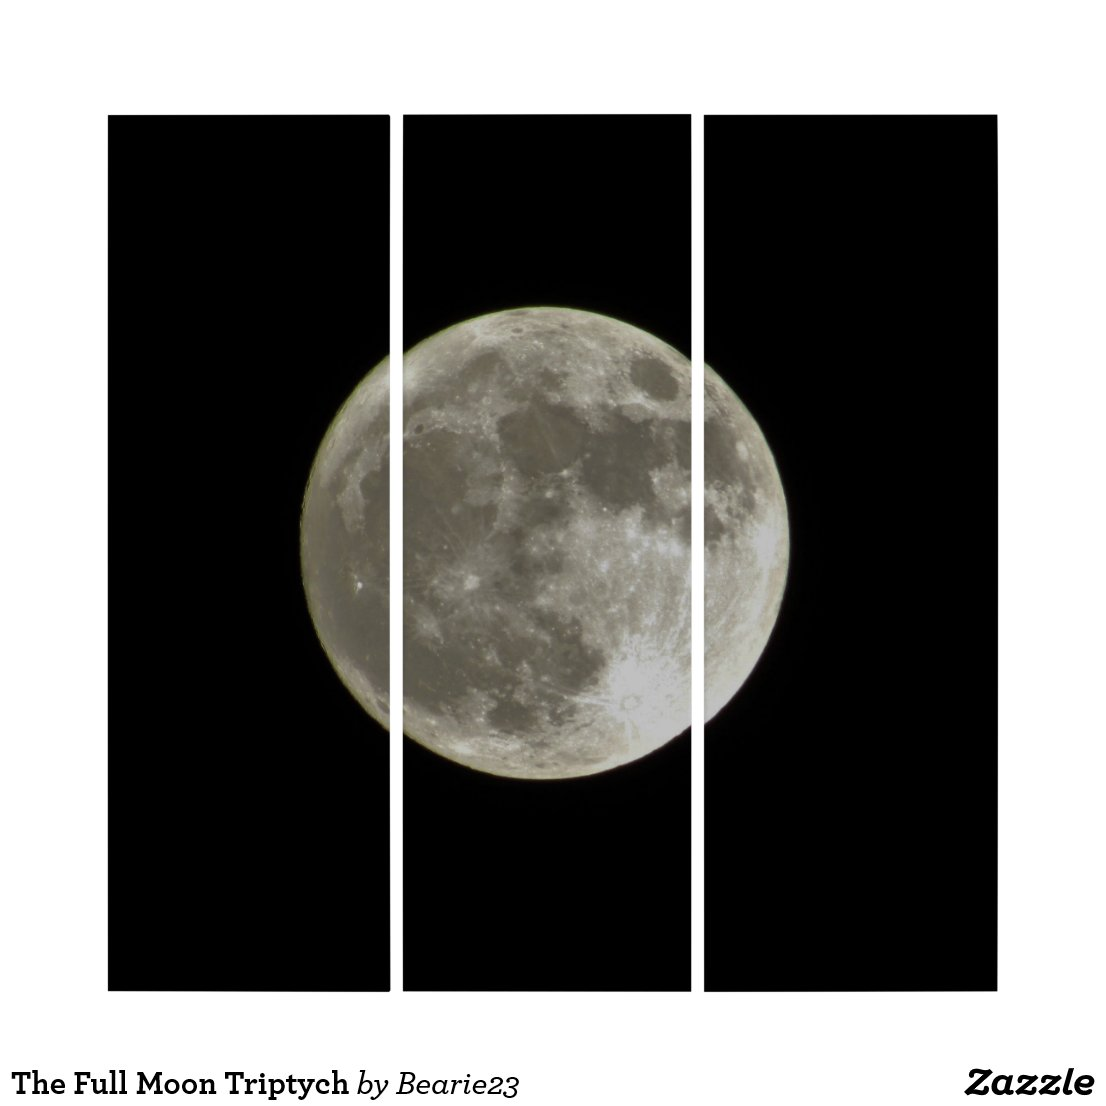 The Full Moon Triptych